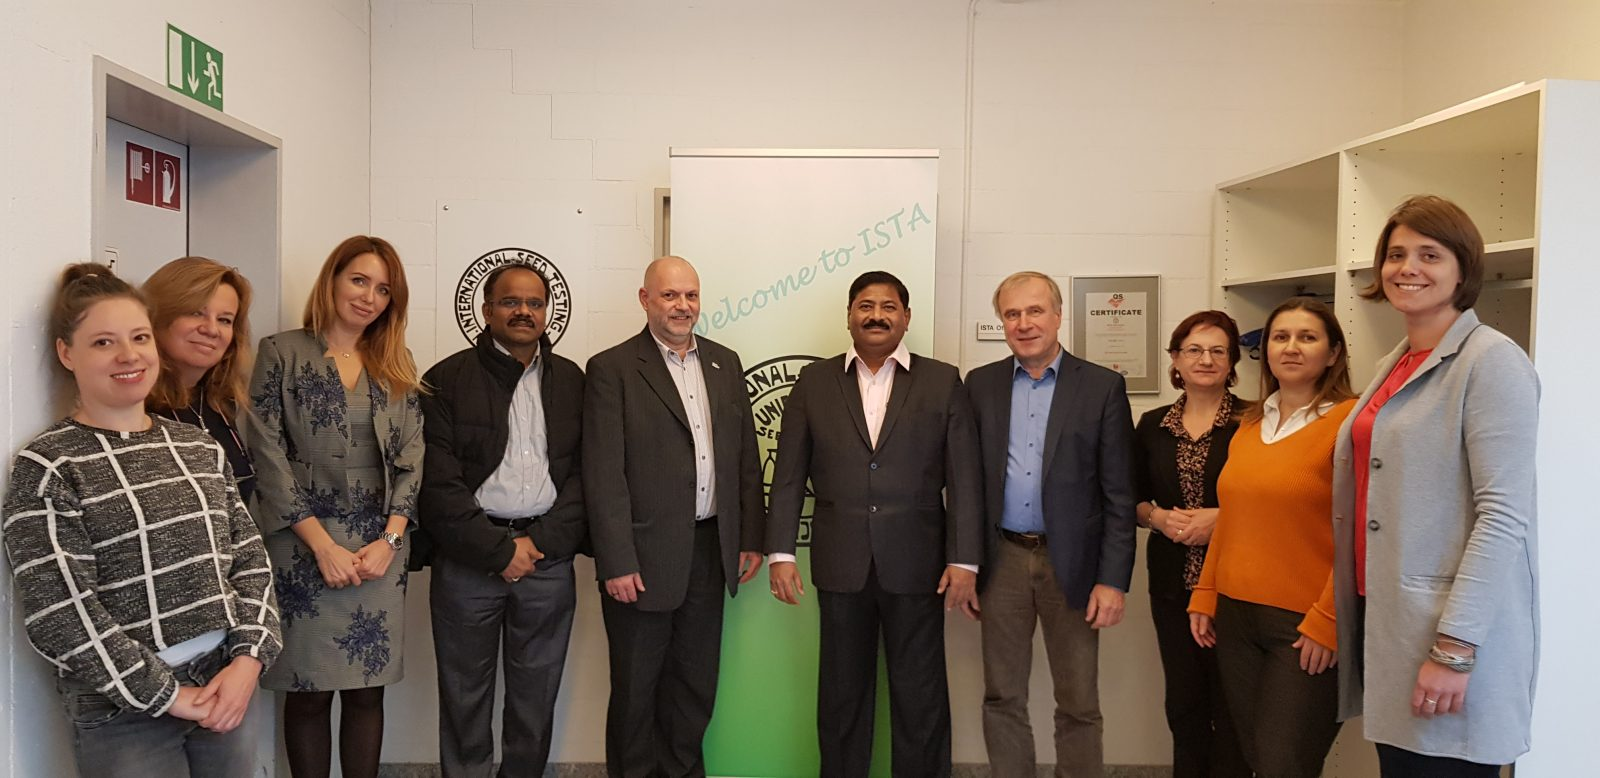 Visit of ISTA office team in Switzerland